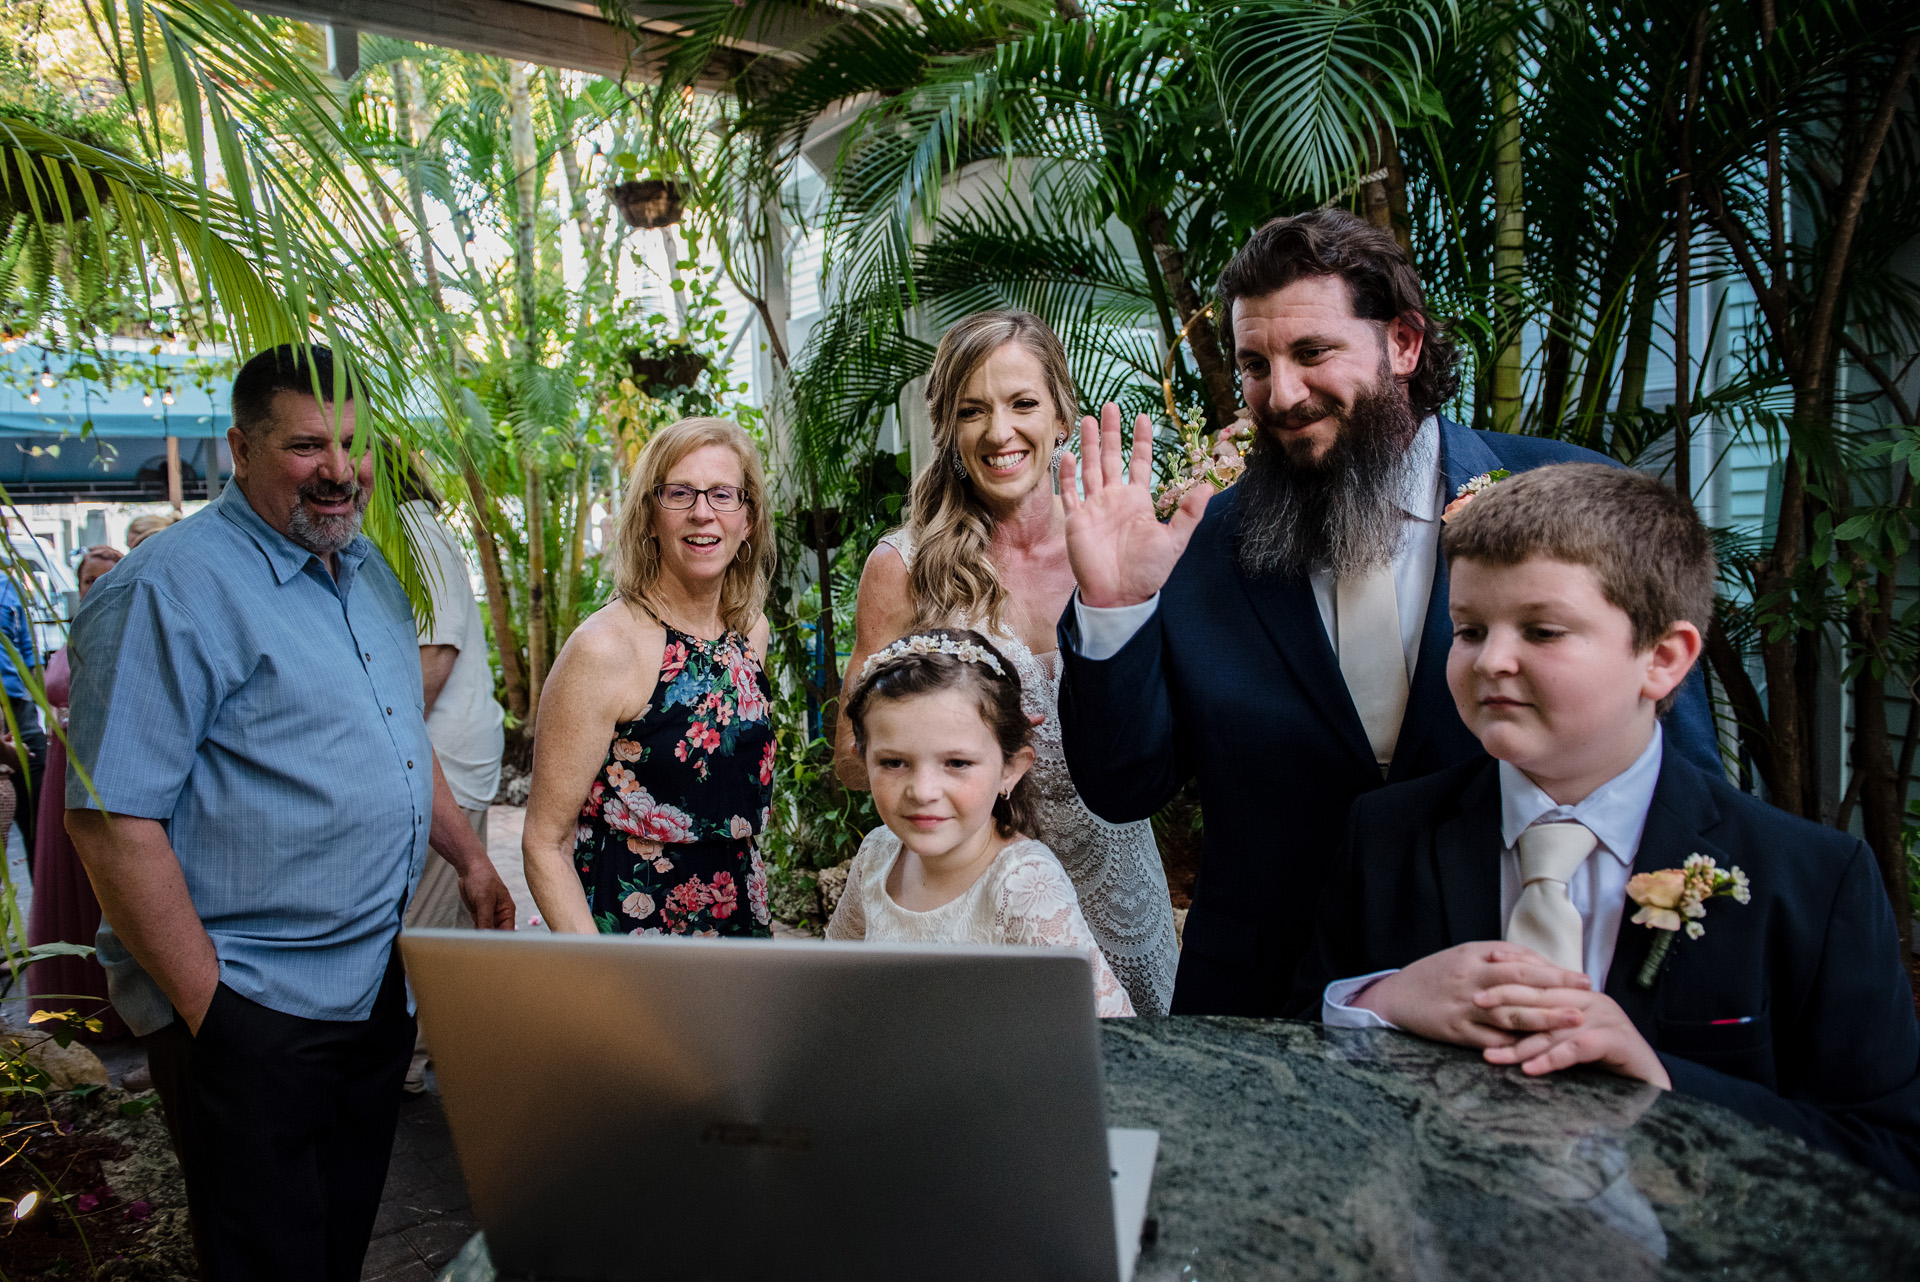 Key West Wedding Photographer, Florida Keys | Like other couples who wed during the pandemic, a zoom call connects